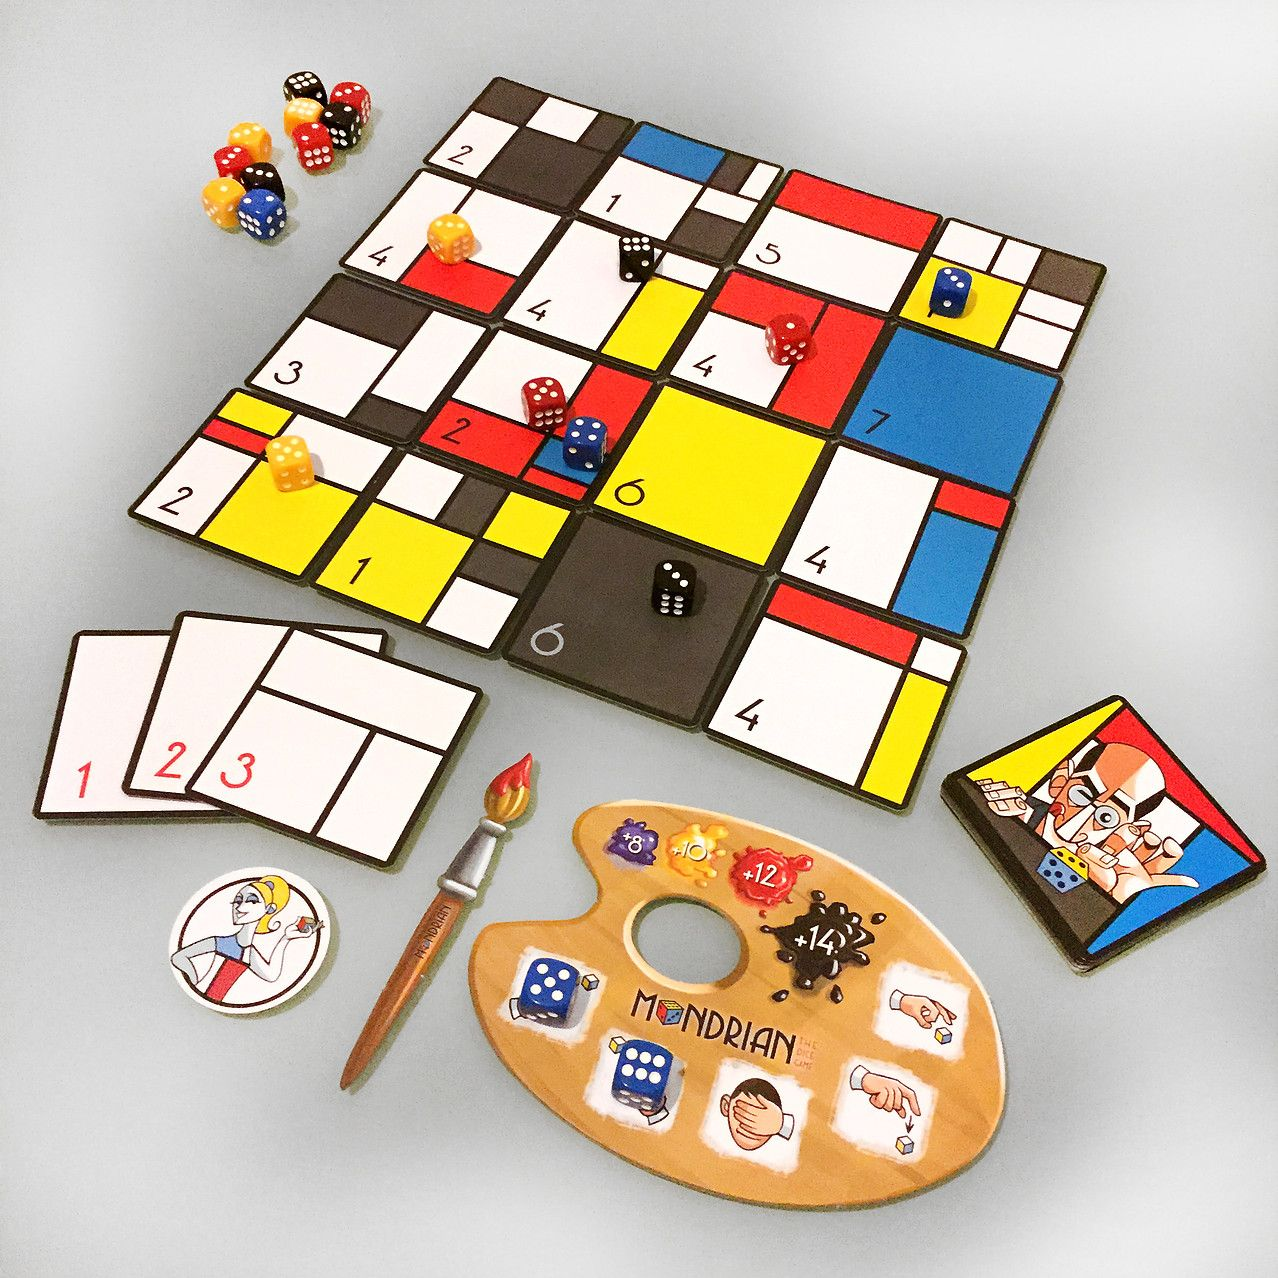 Mondrian the dice game juegos de cartas